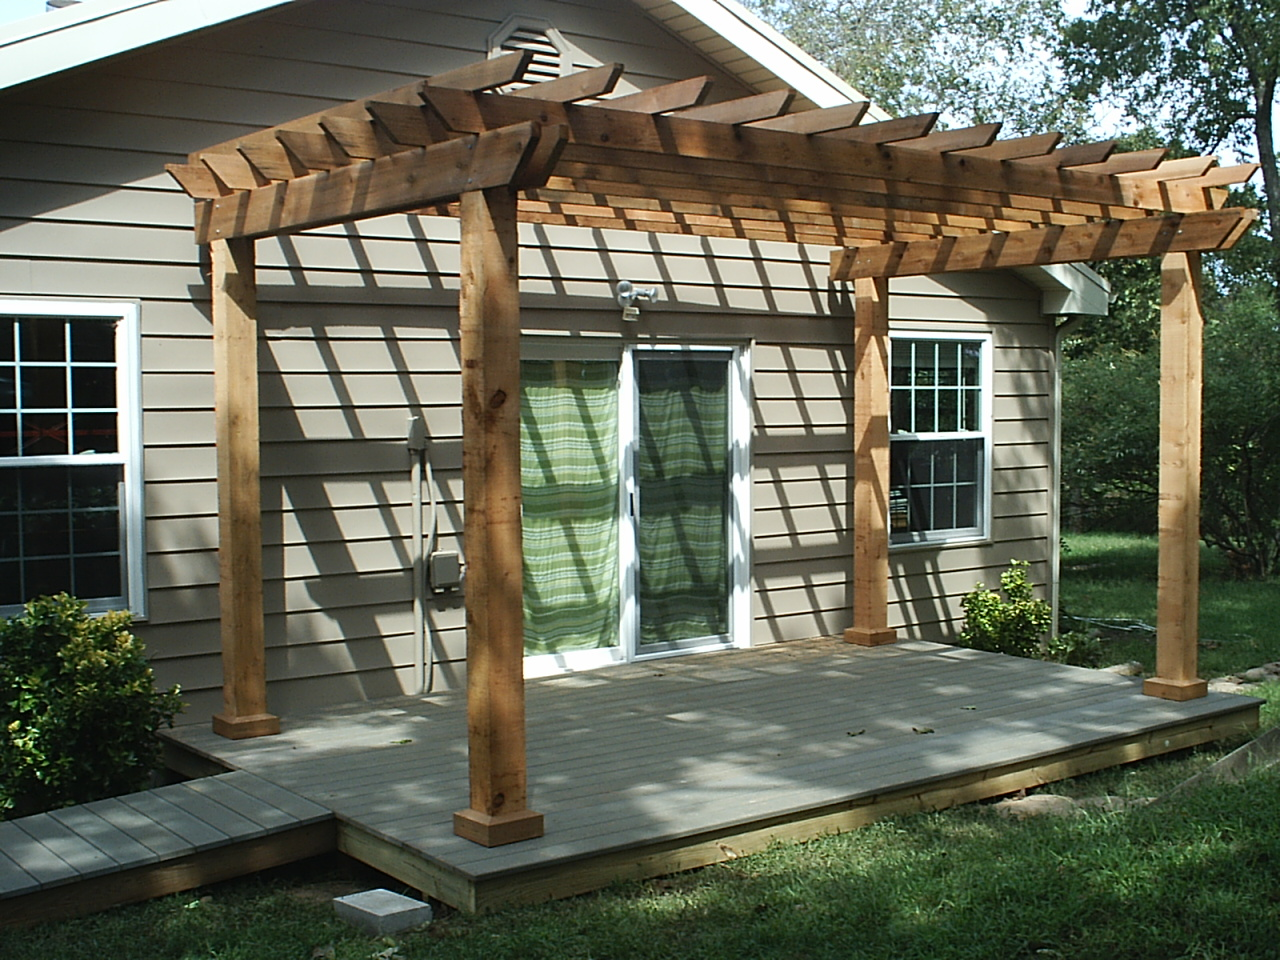 Simplistic Pergola plans Ideas Of Home Backyard Design With sigle hung window and glass door